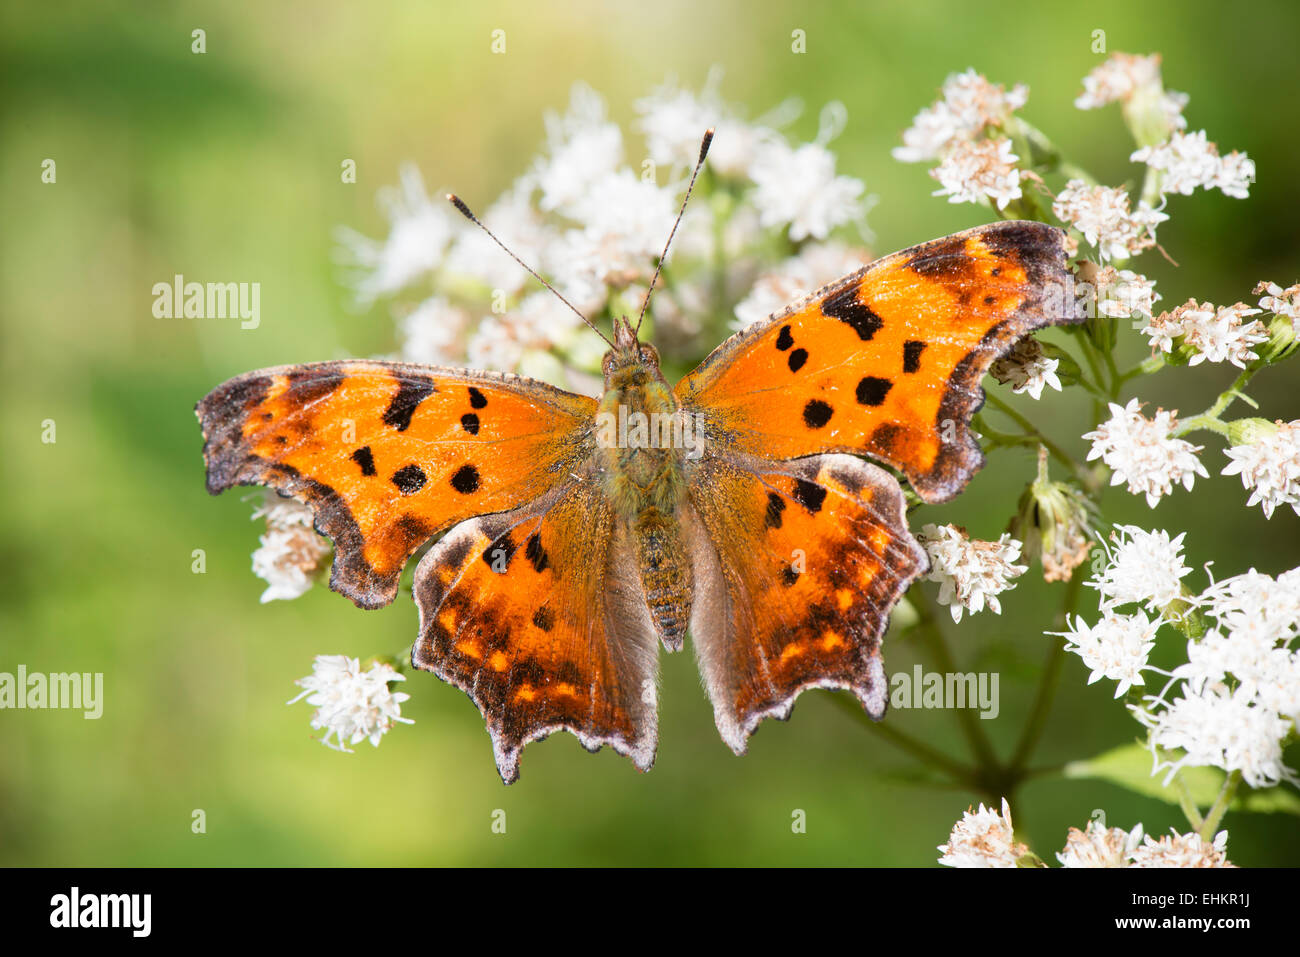 Comma butterfly close up with wings open, resting on small white flowers - Stock Image